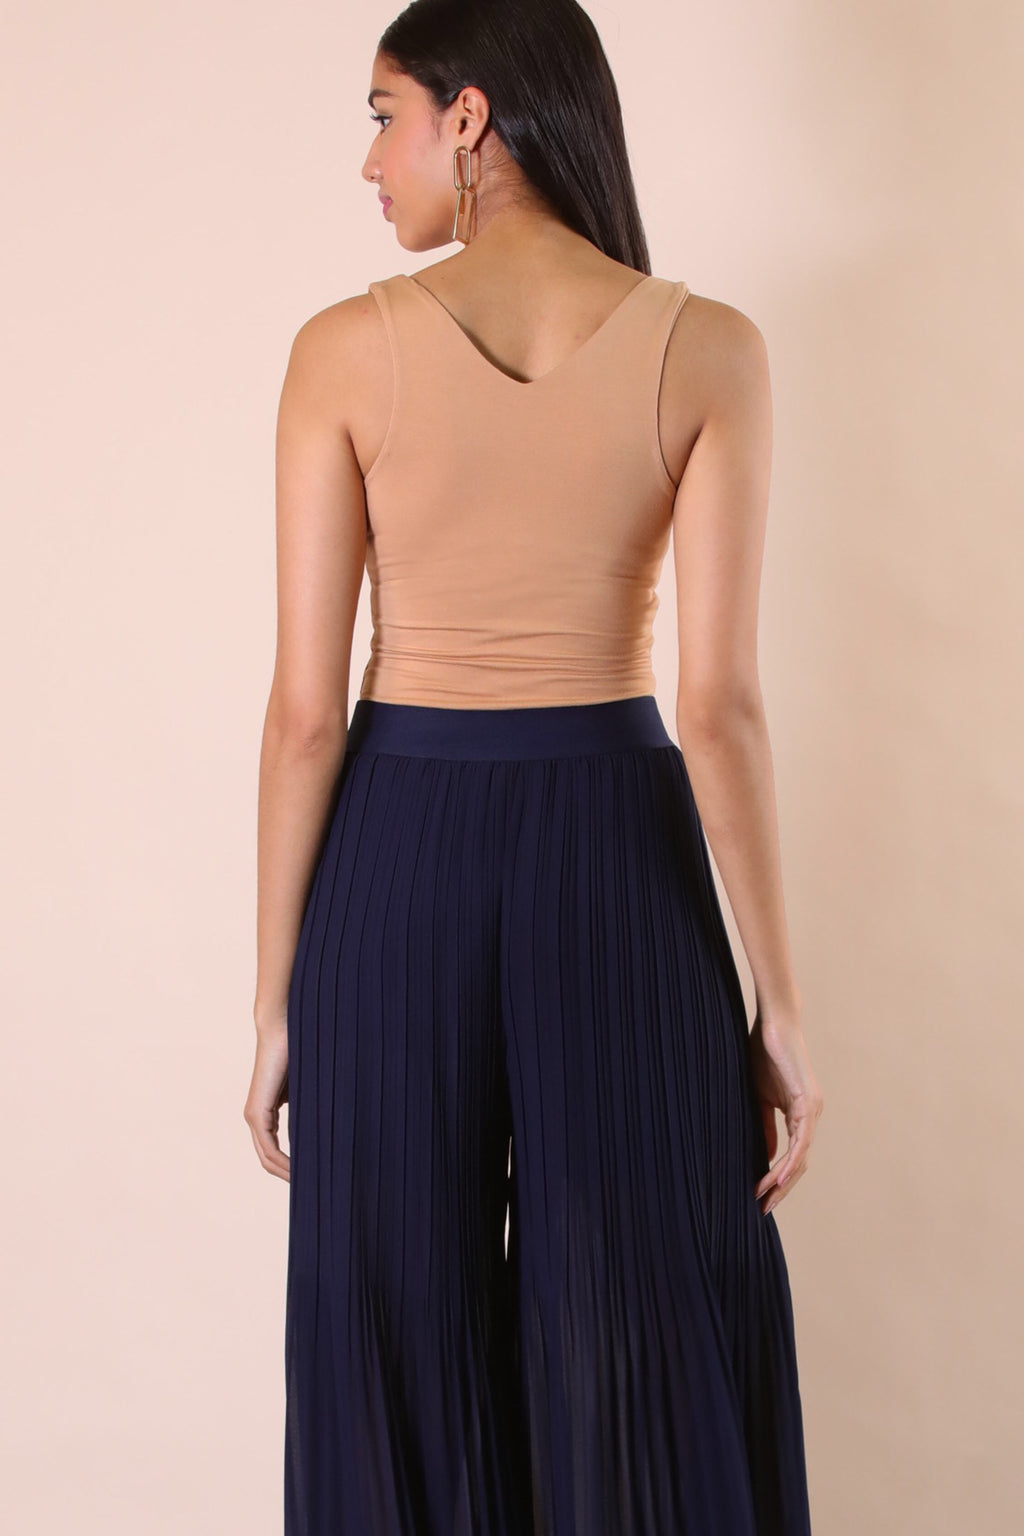 Navy Flare Pant